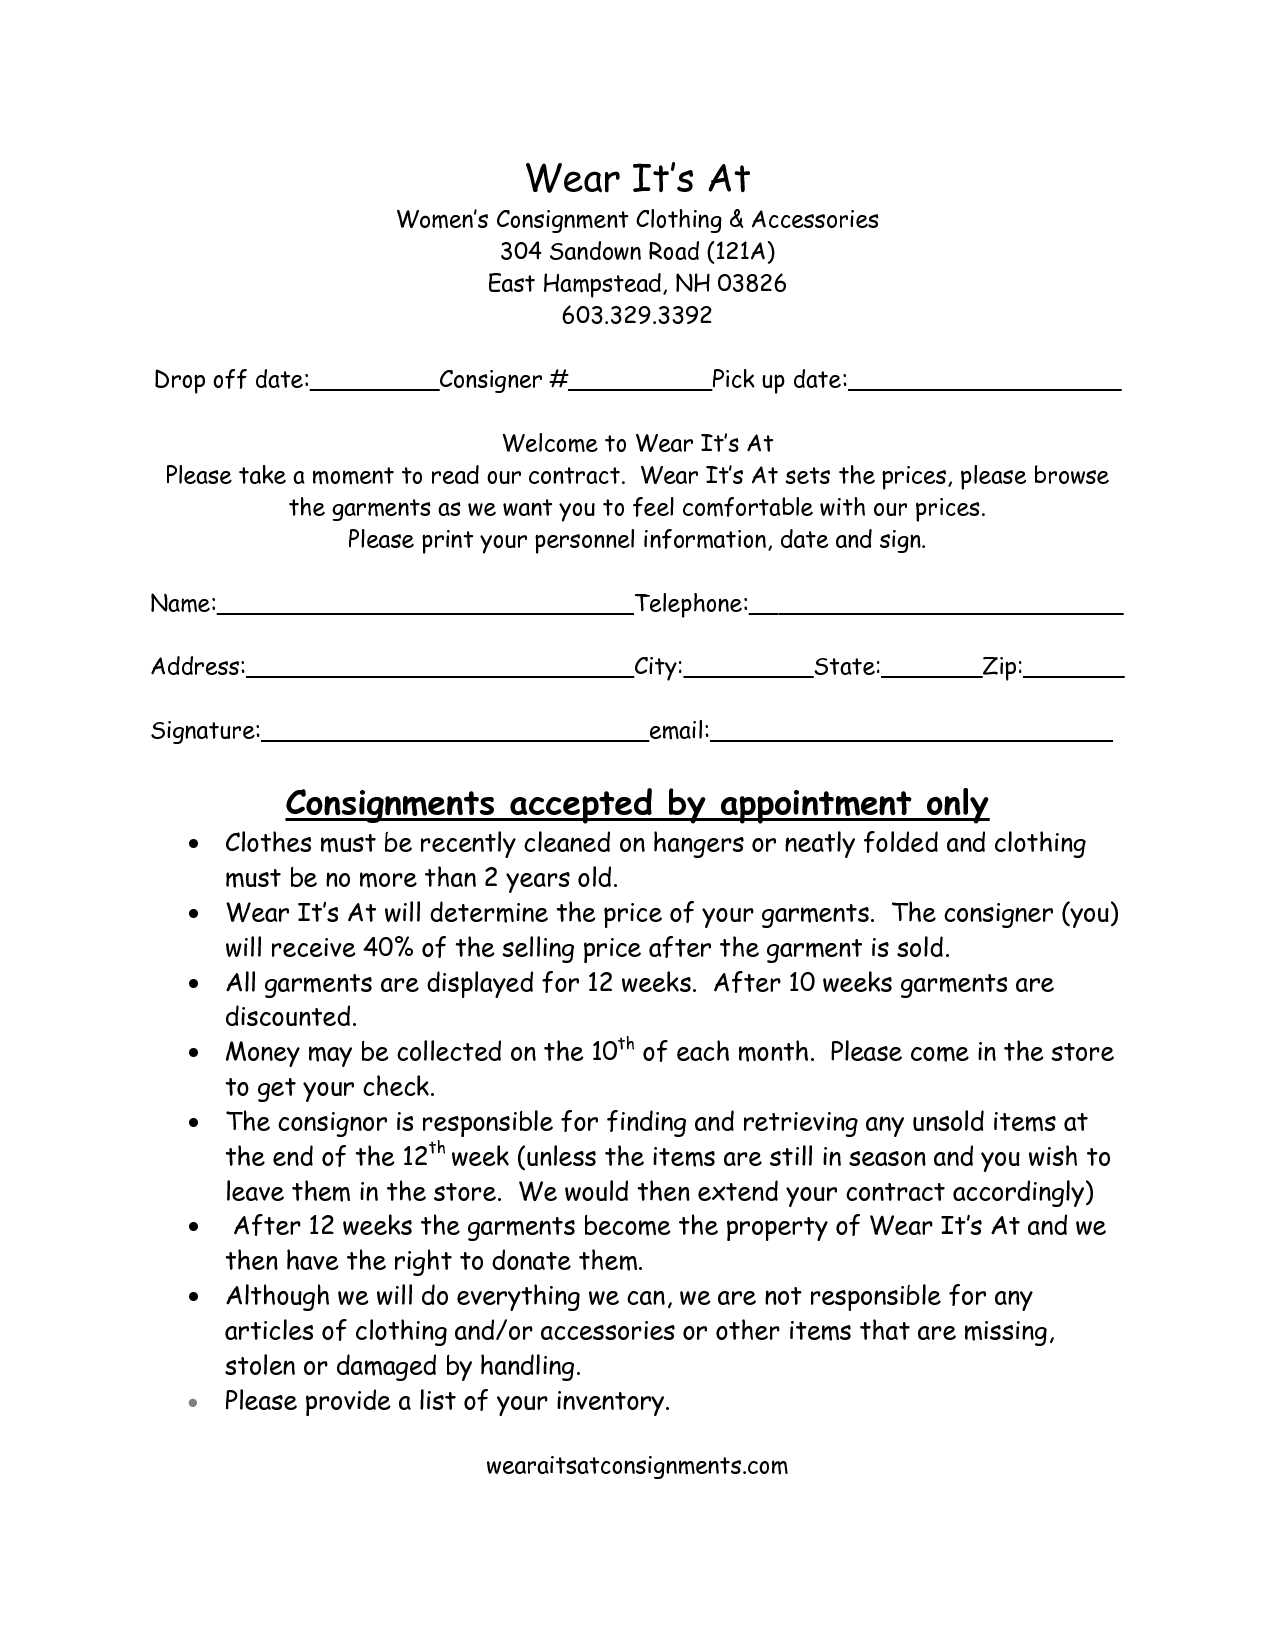 Clothing Consignment Contract Template   Scope Of Work within Clothing Store Business Plan Template Free